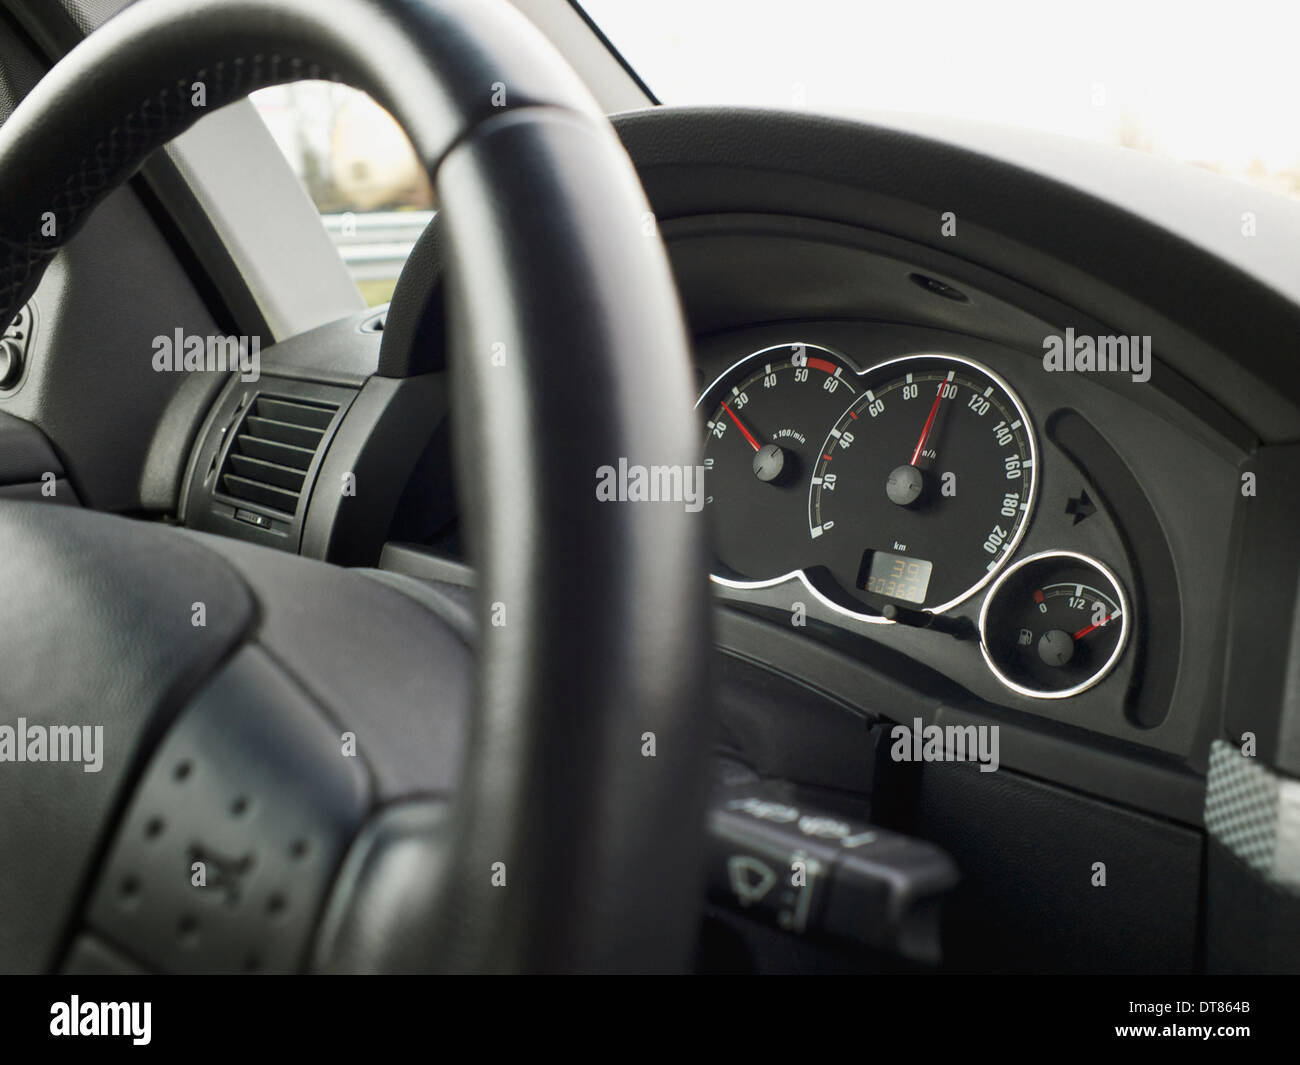 Car dashboard when driving the exact speed limit of 100 kilometers per hour - Stock Image